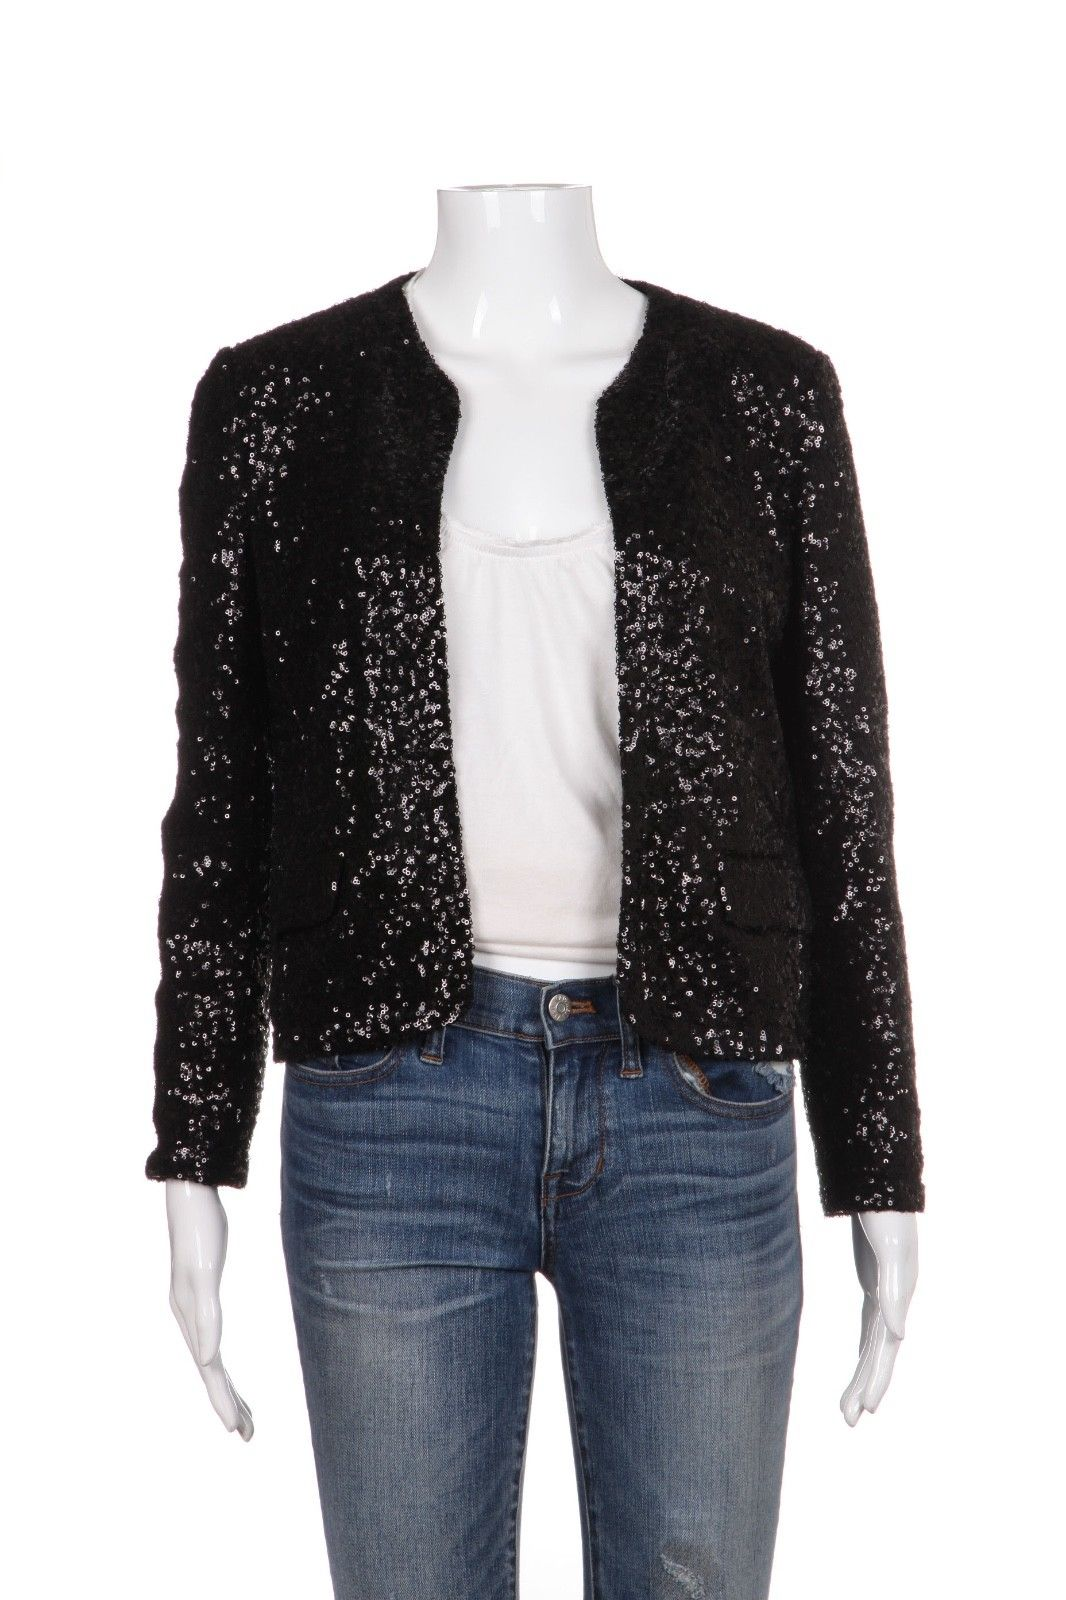 JUICY COUTURE Black Sequin Open Jacket Blazer Size S